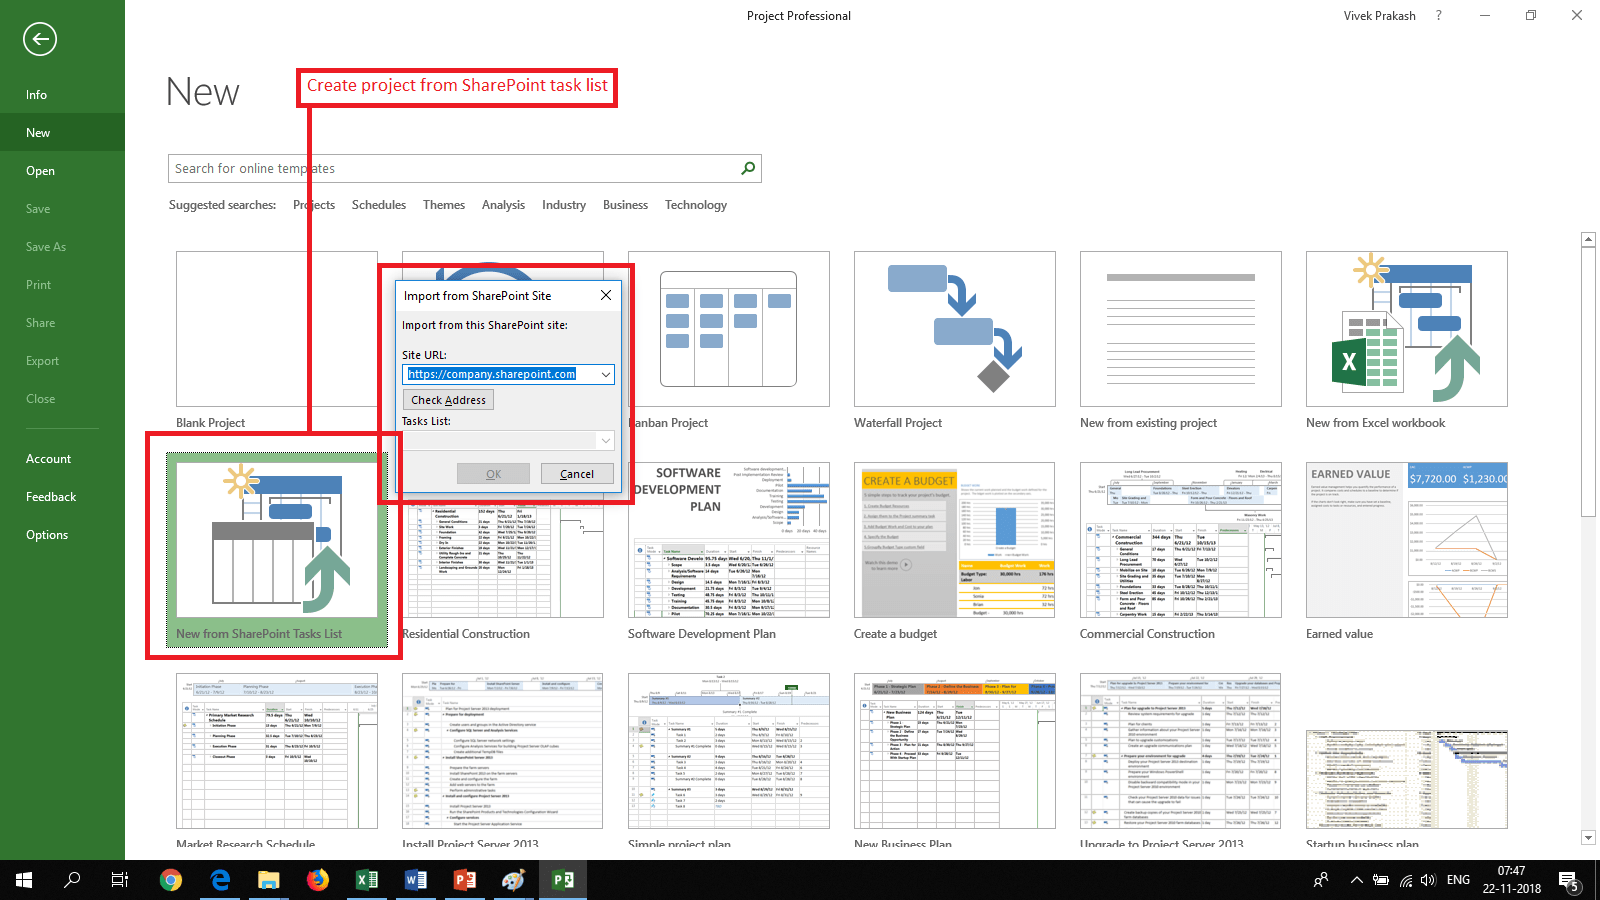 08-Create New Project From SharePoint Tasks List in MS Project